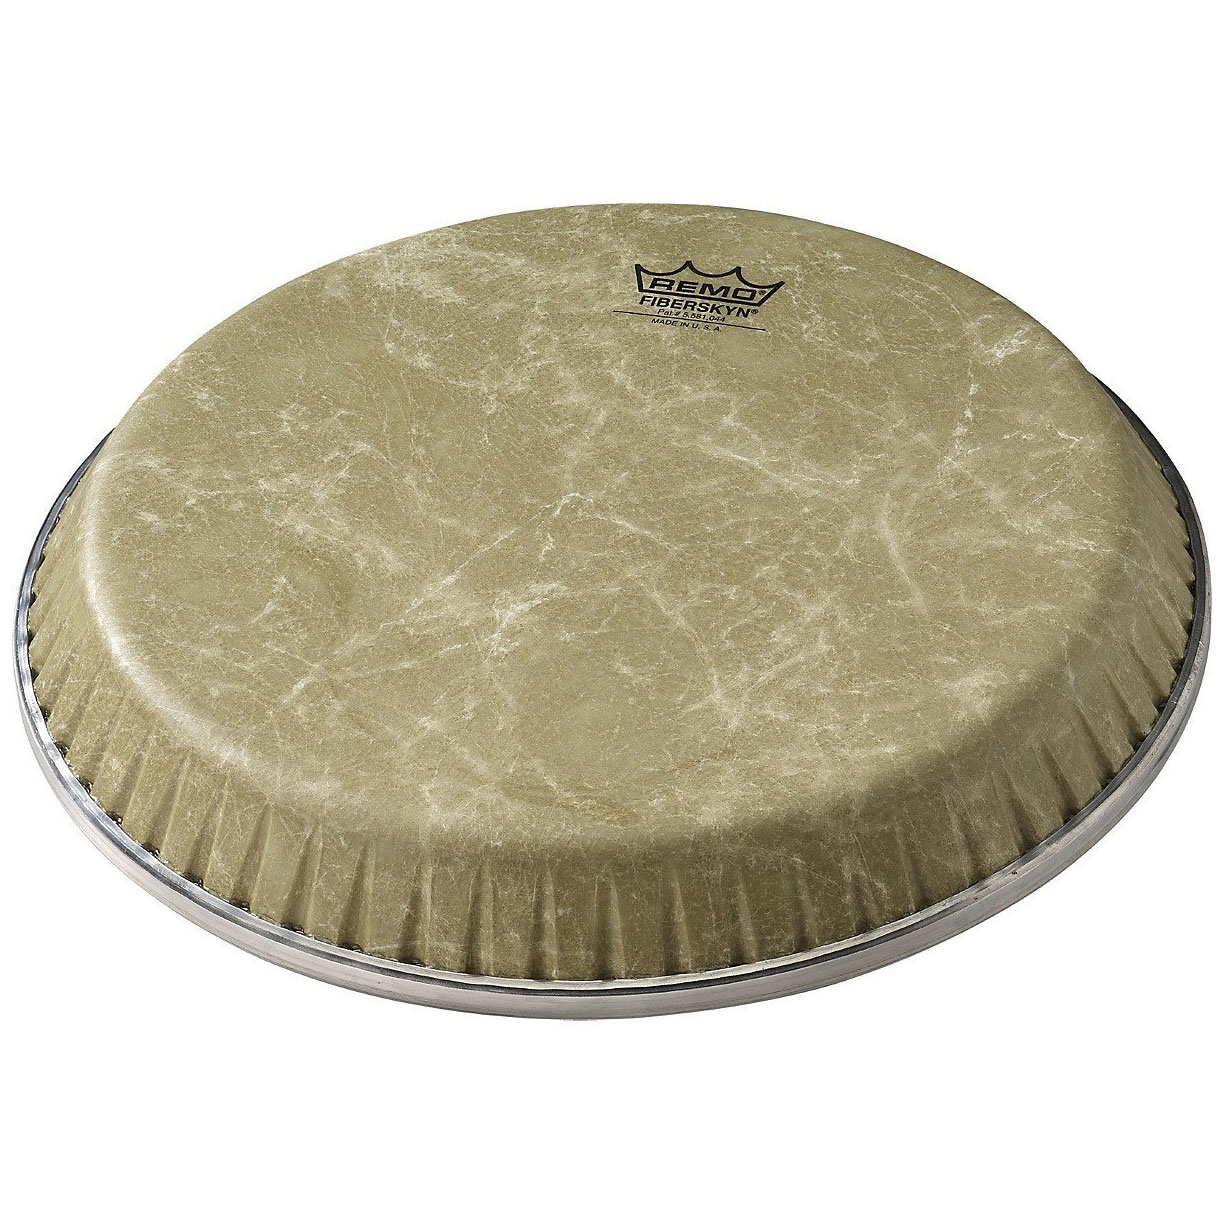 "Remo 12.5"" Symmetry Fiberskyn Conga Drum Head (D1 Collar)"